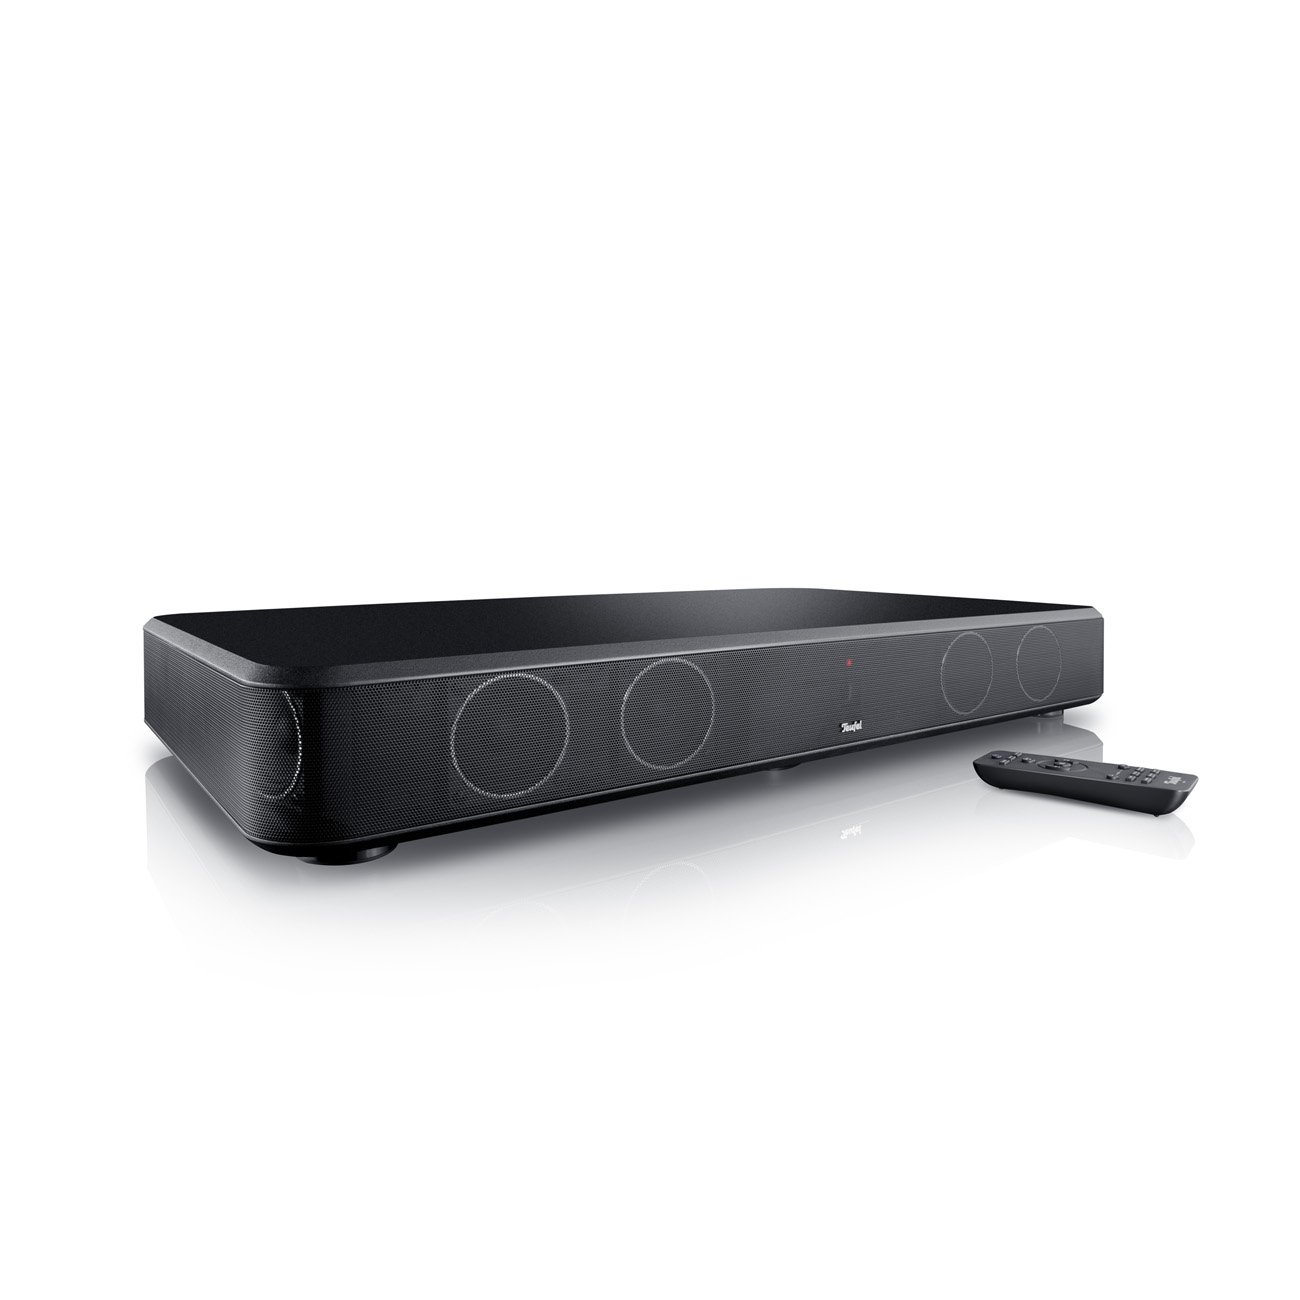 teufel 8293 cinebase netzwerk heimkino soundbar sounddeck lautsprecher box 4048945012982 ebay. Black Bedroom Furniture Sets. Home Design Ideas